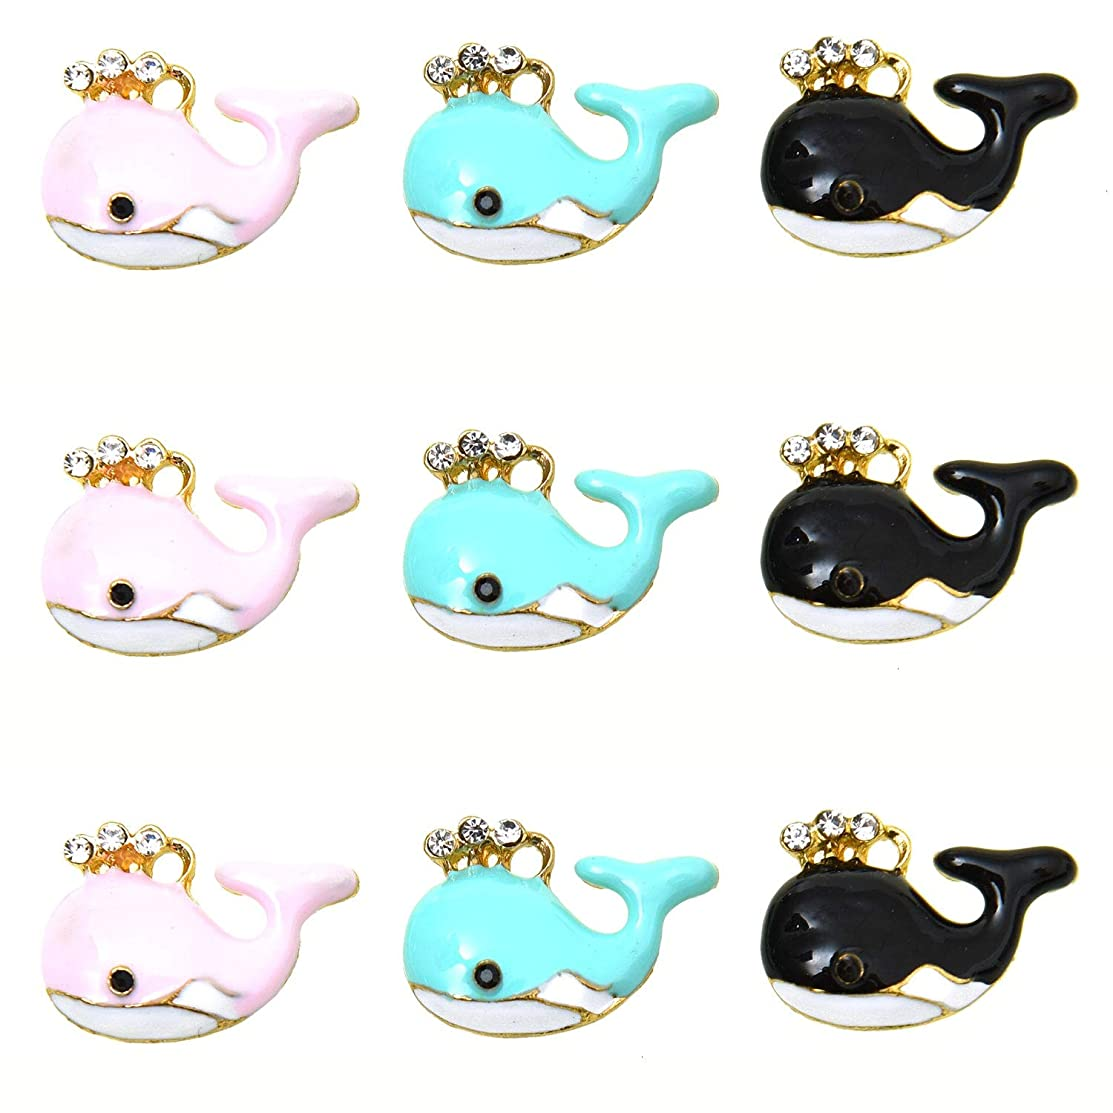 Monrocco 9Pcs Whale Charms Enamel Whale Charm Bracelet Charms Pendants for Jewelry Making and Crafting